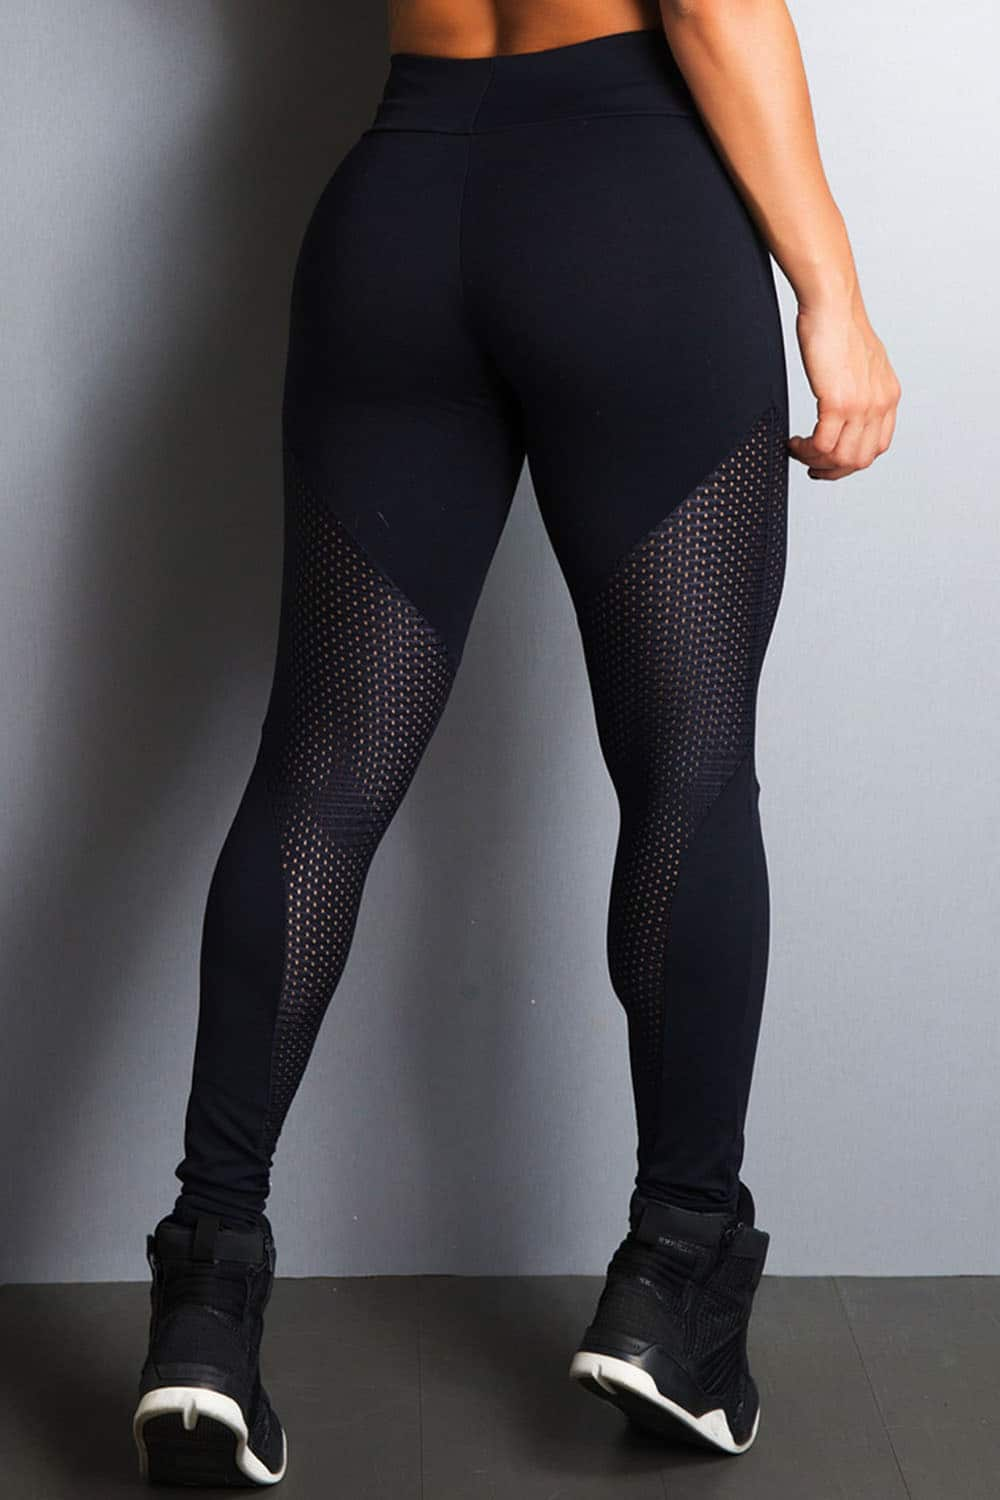 AirFlow_Leggings